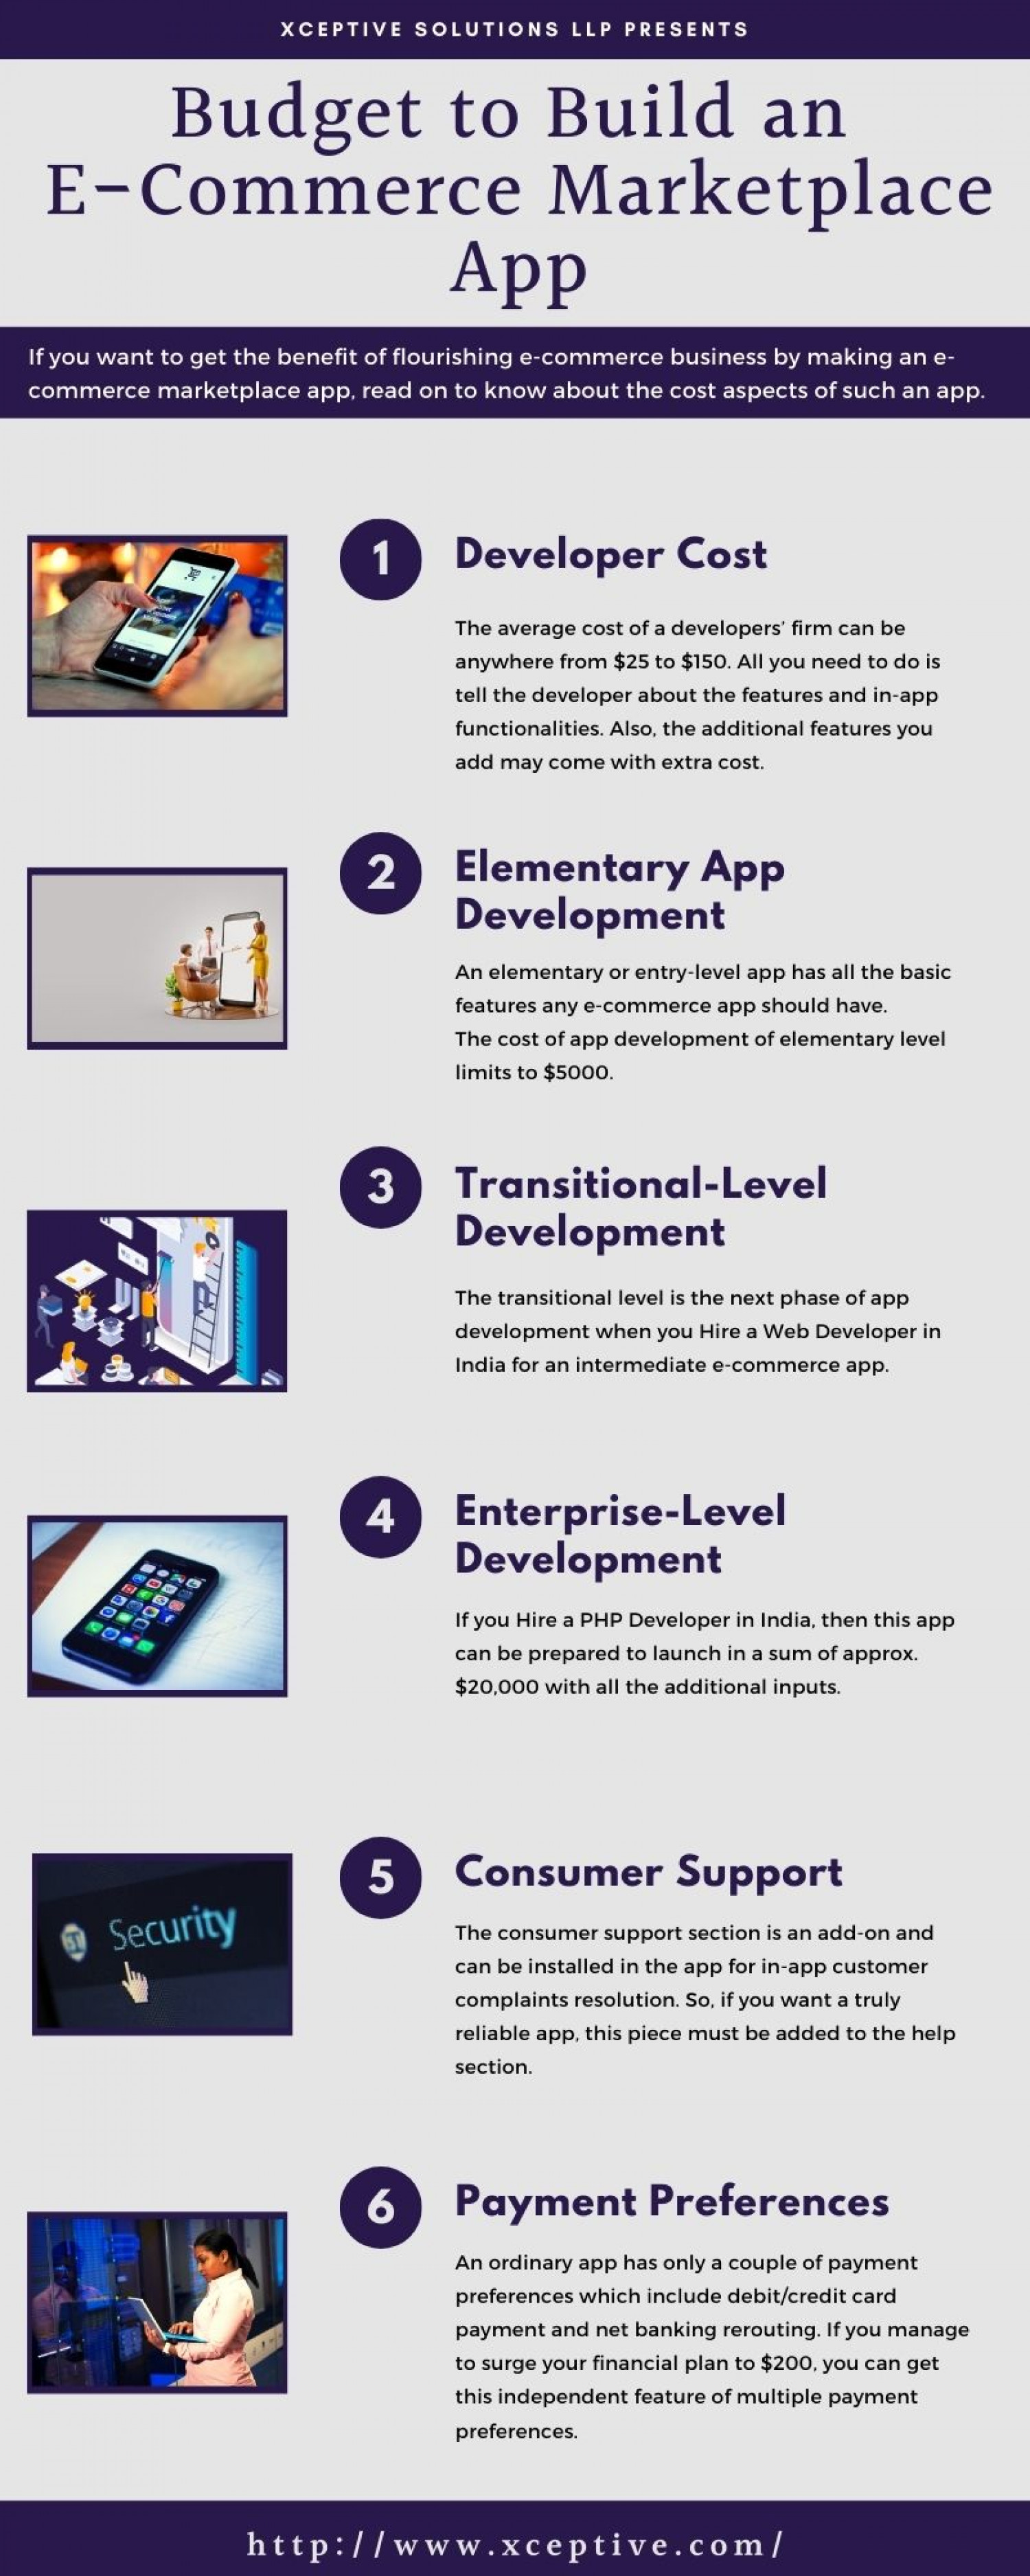 How Much Should be the Budget to Build an E-Commerce Marketplace App? Infographic